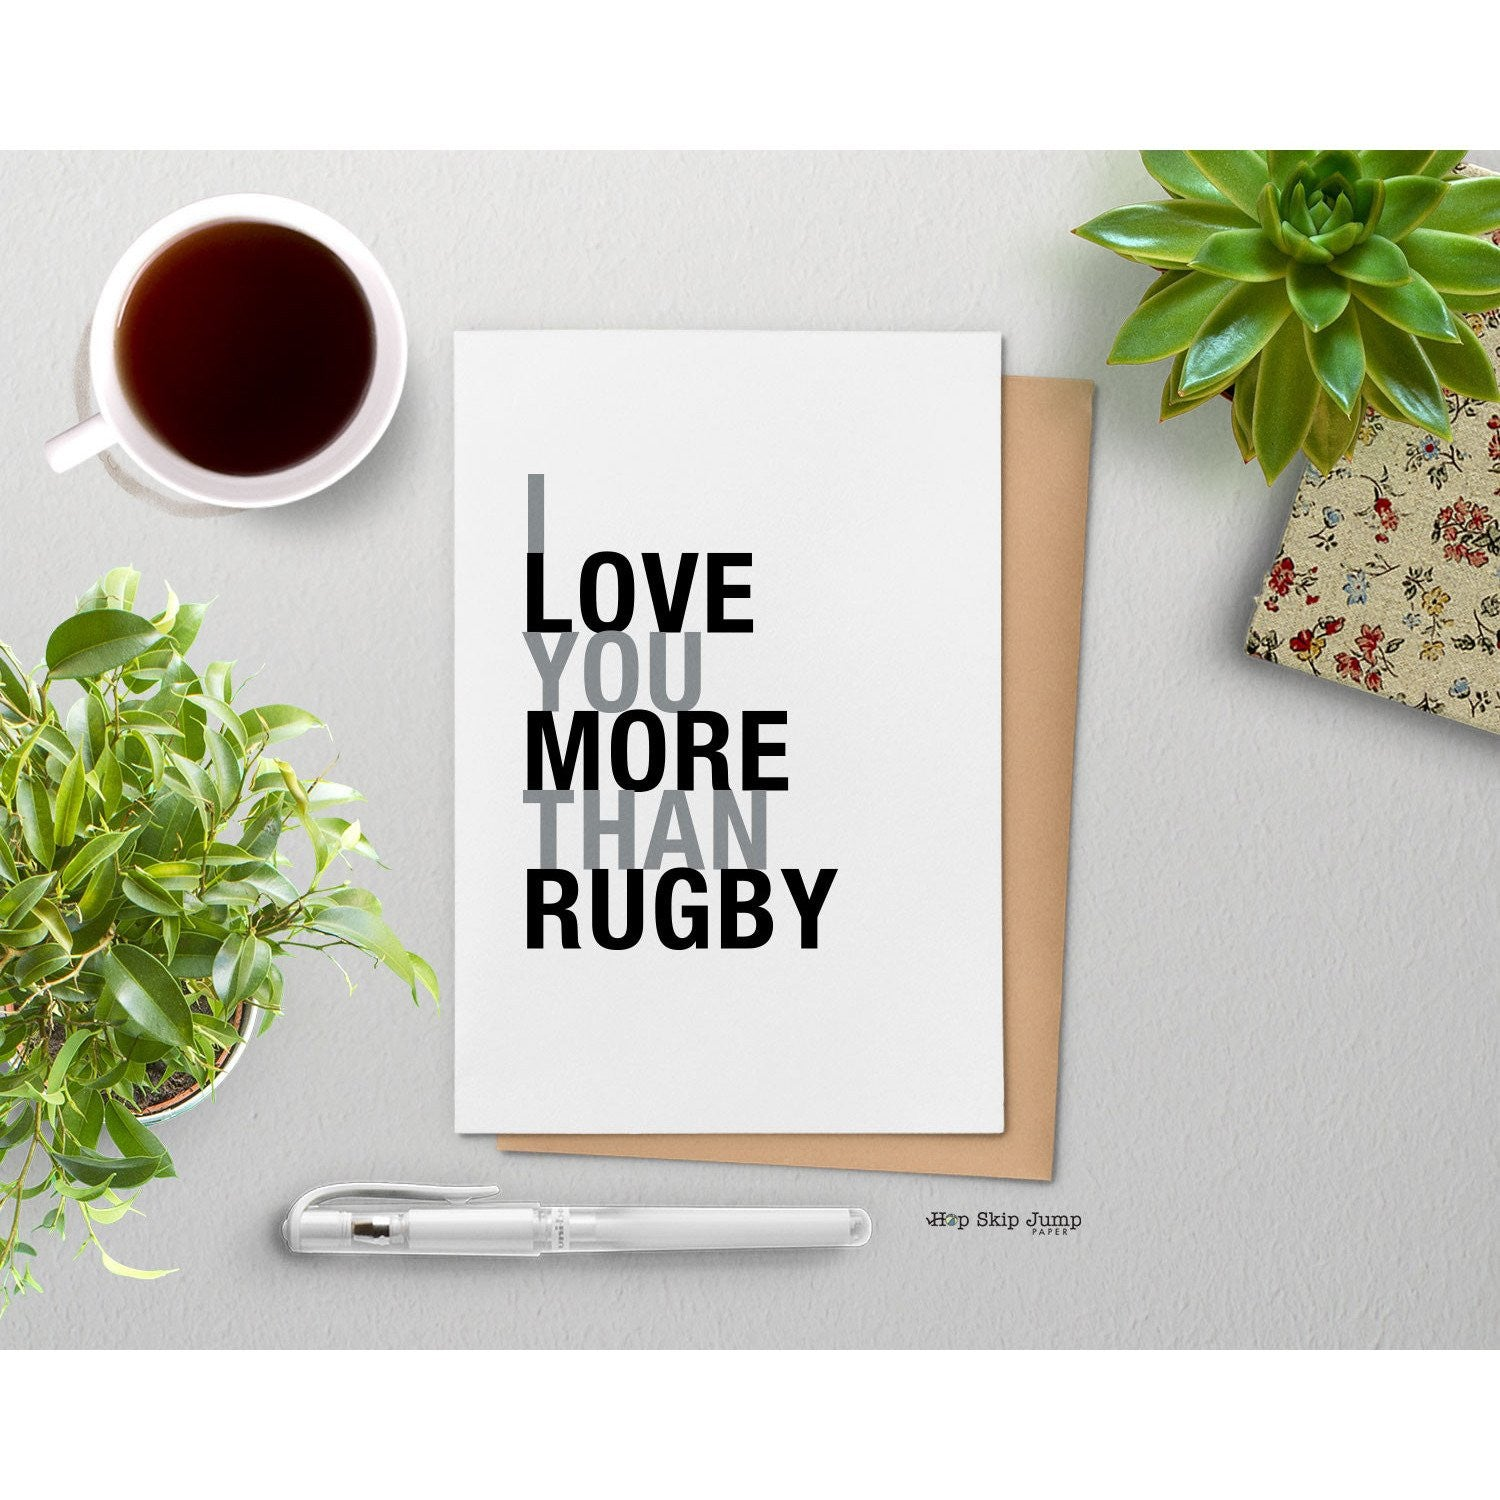 I Love You More Than Rugby, A2 size greeting card